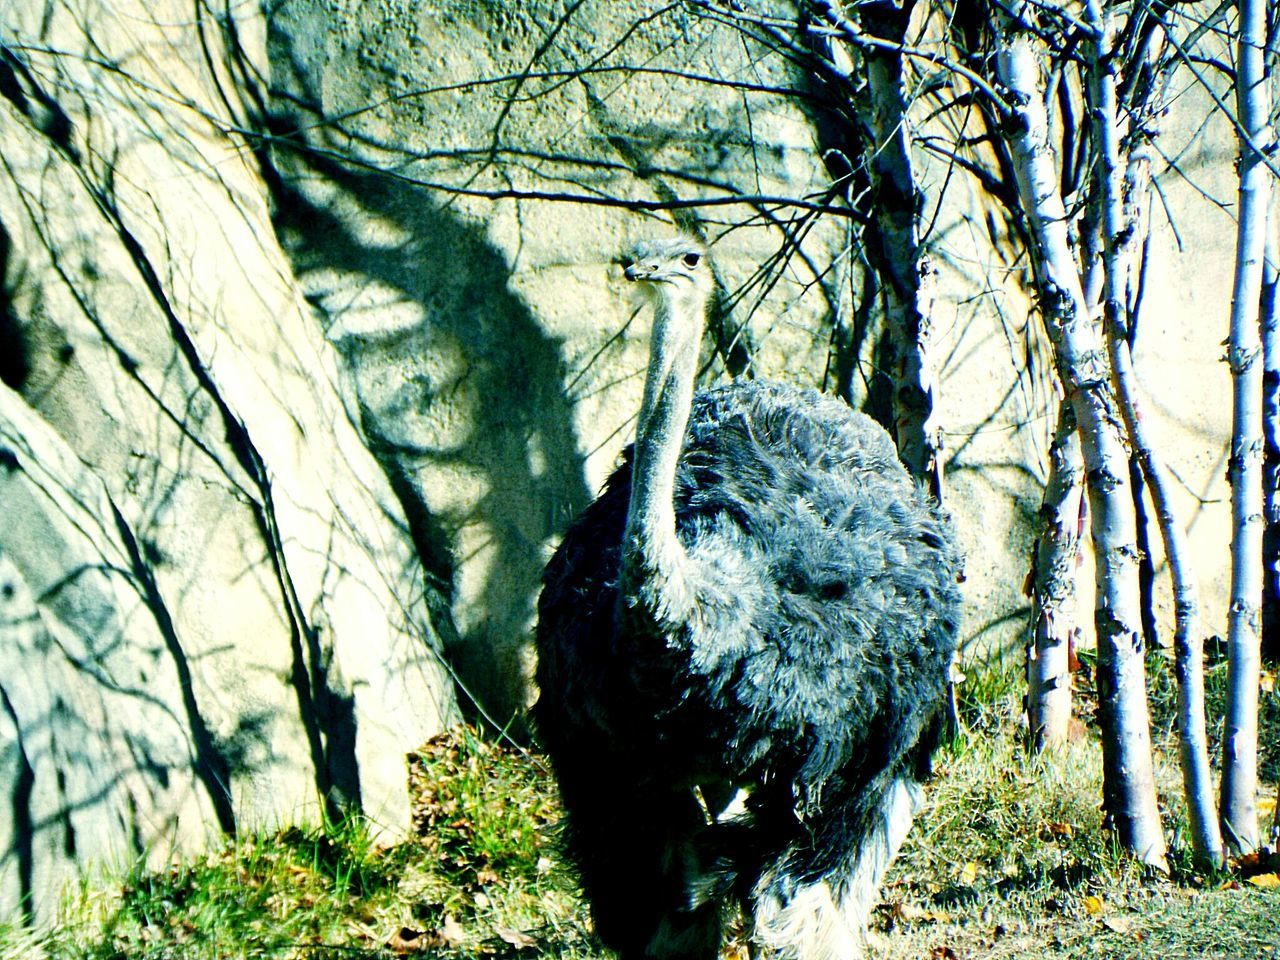 Ostrich Against Bare Trees At Cincinnati Zoo And Botanical Garden